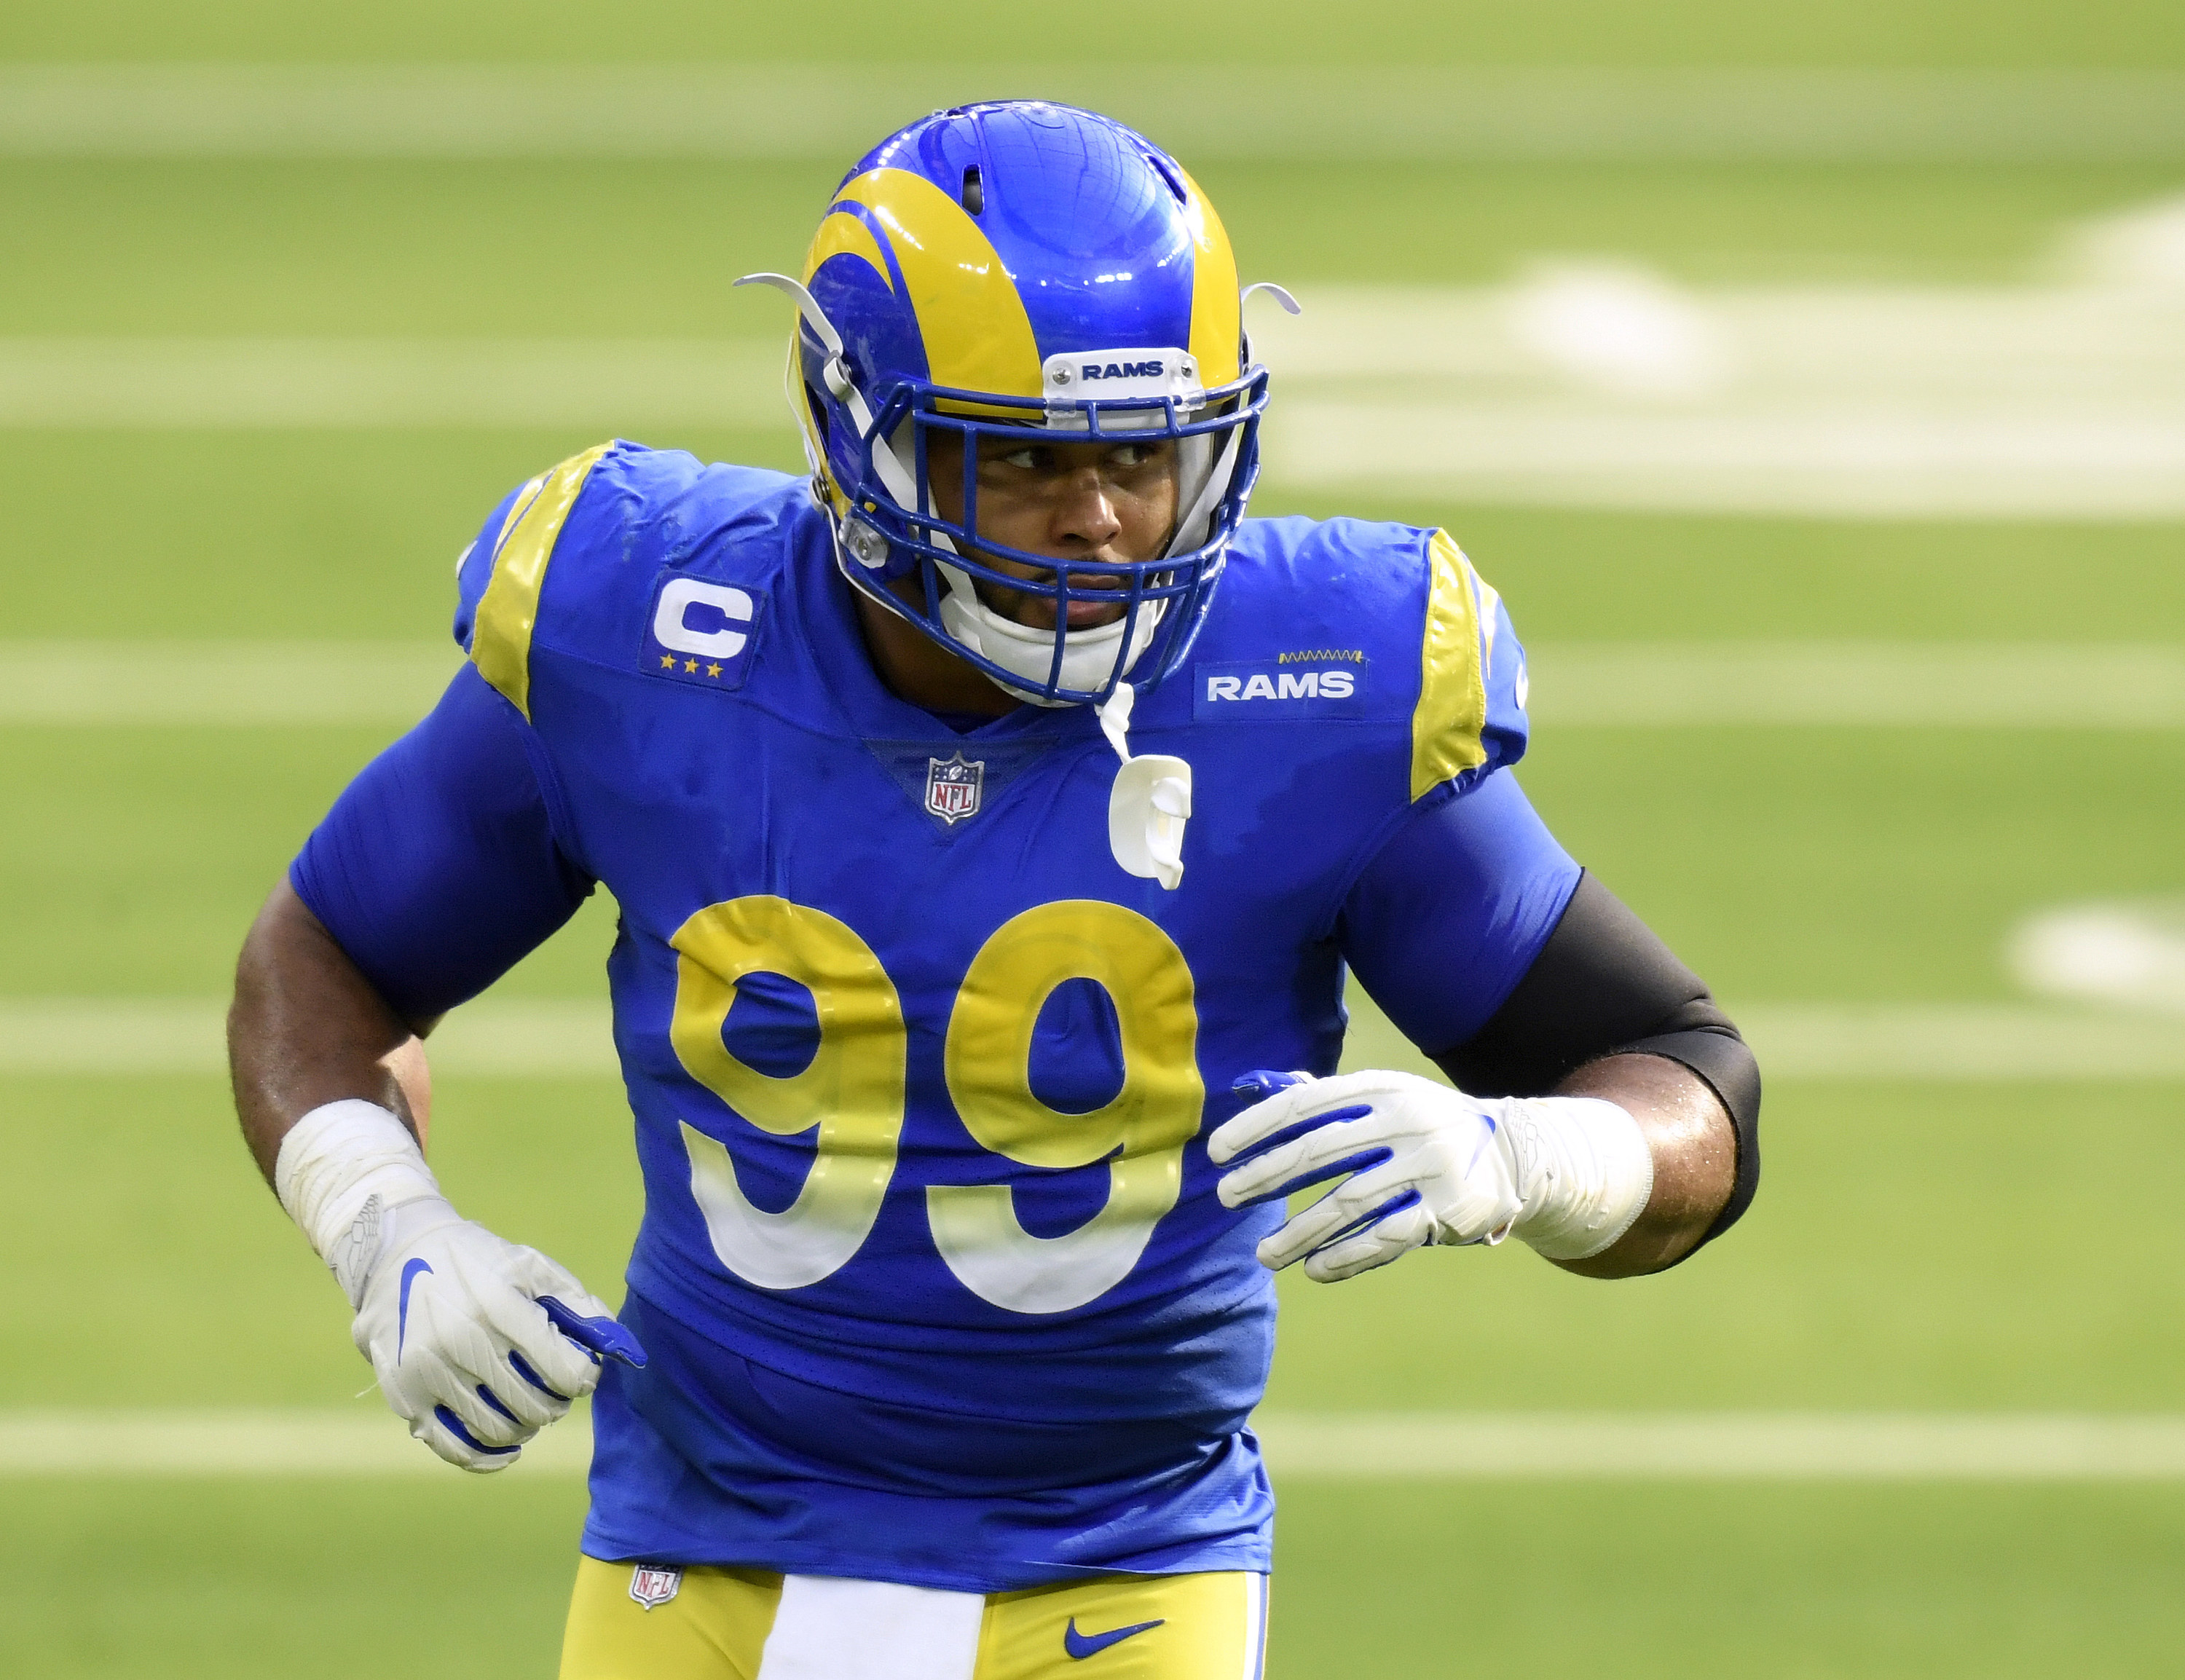 Blue and gold Rams uniforms